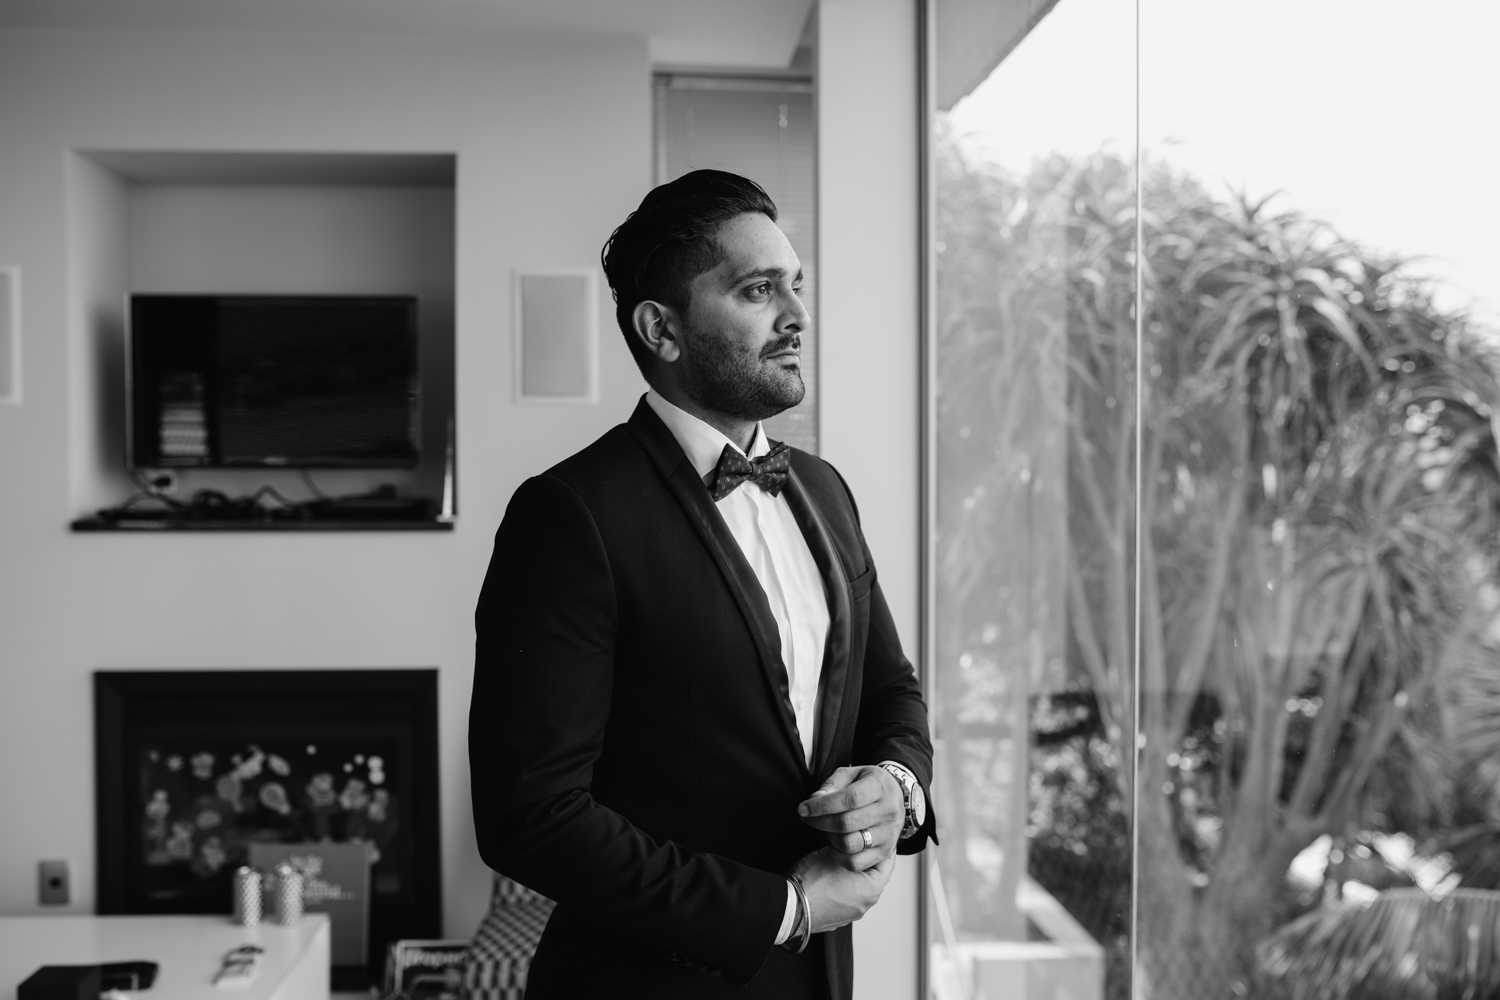 Groom getting ready for his wedding. This image was taken by Mala Photography, an Auckland based wedding photographer. The wedding was at Markovina Vineyard Estate In Kumeu, Auckland